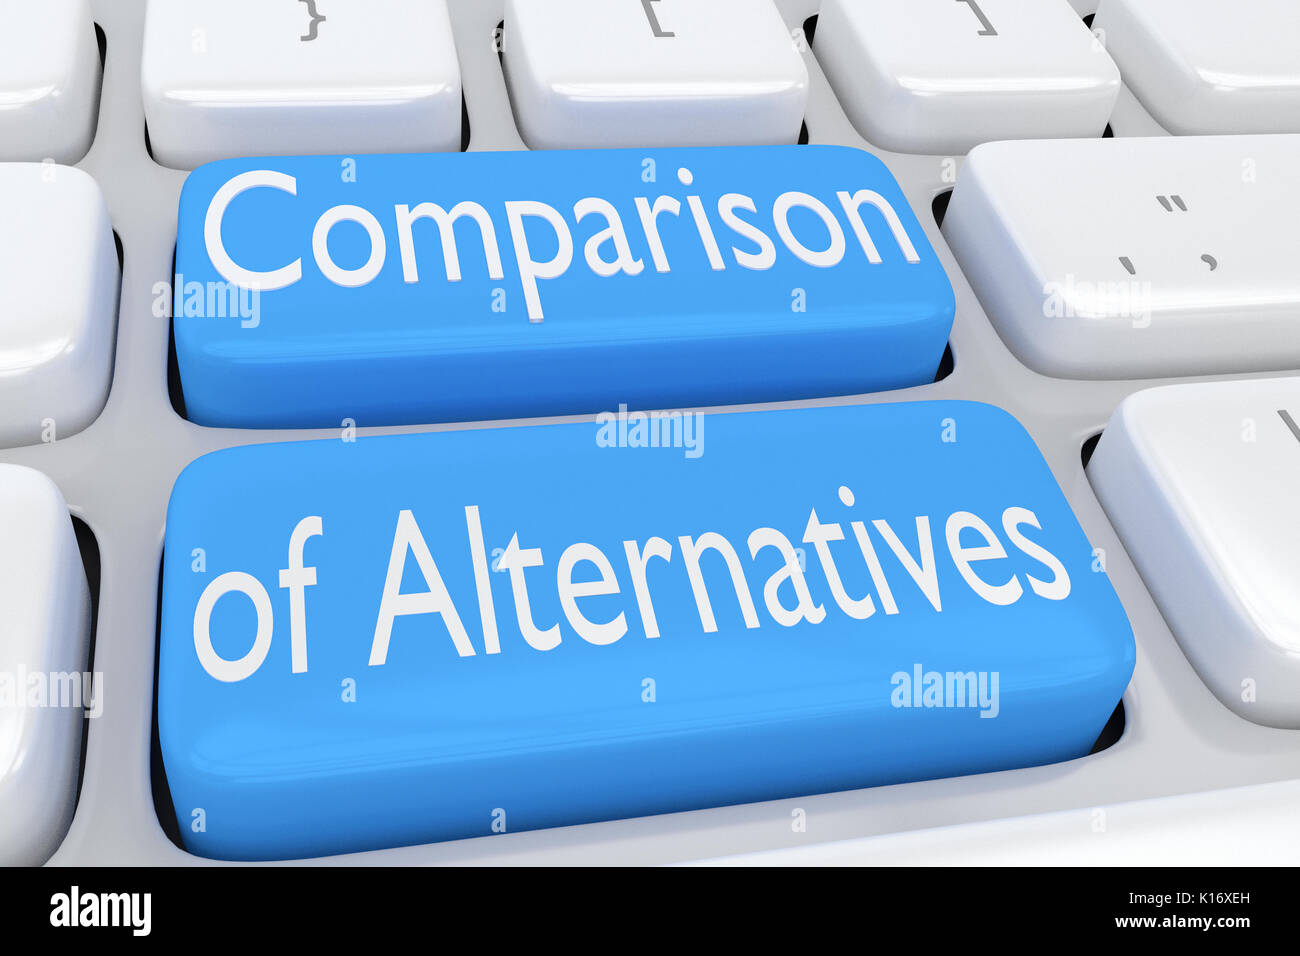 3D illustration of computer keyboard with the script 'Comparison of Alternatives' on two adjacent pale blue - Stock Image